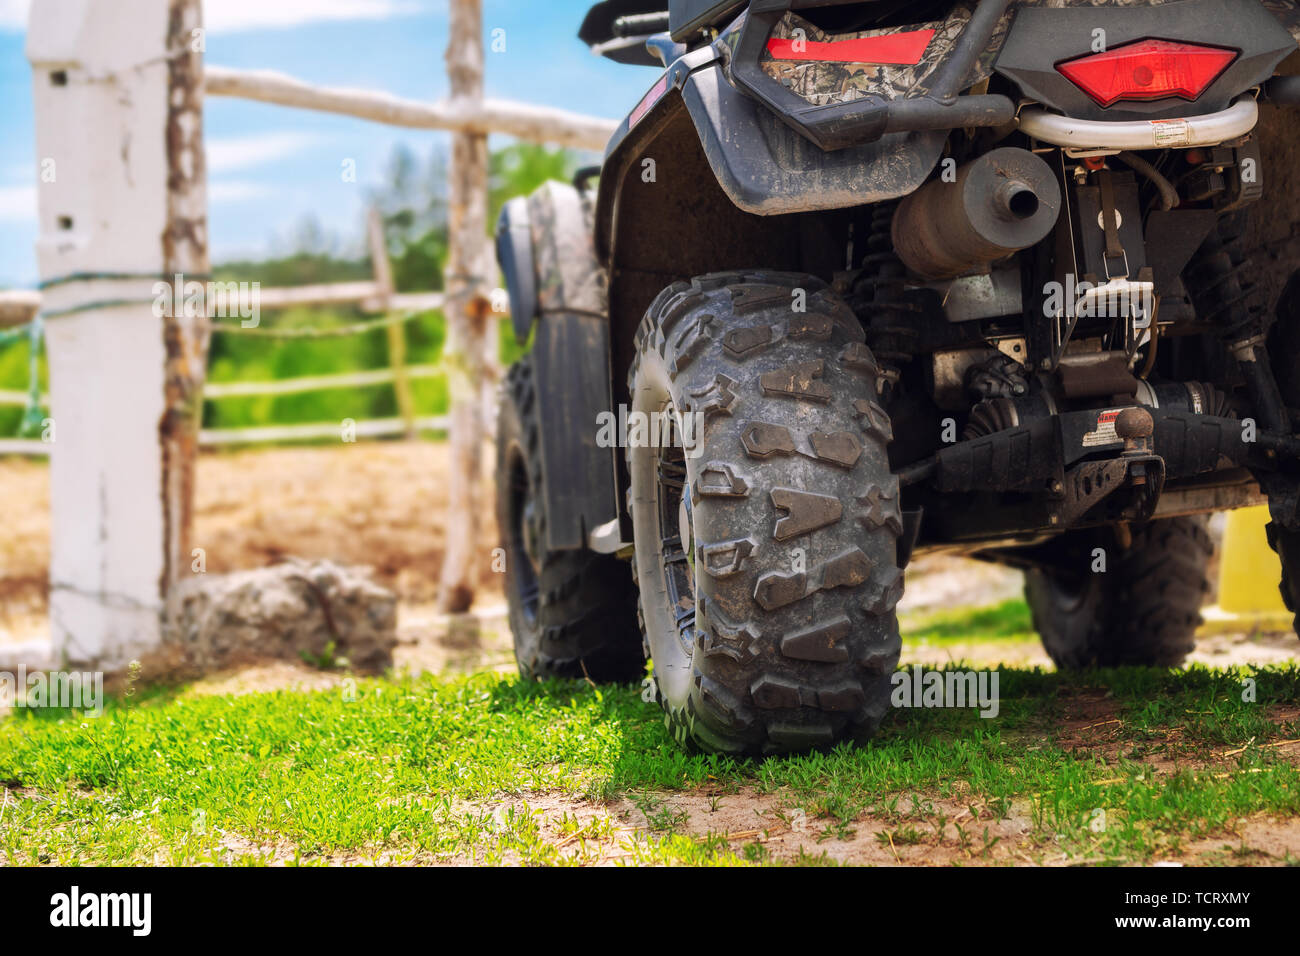 ATV quad bike vehicle standing near wooden fence at farm or horse stable. Back view of all wheel drive motorcycle at farm. Rural countryside machine Stock Photo